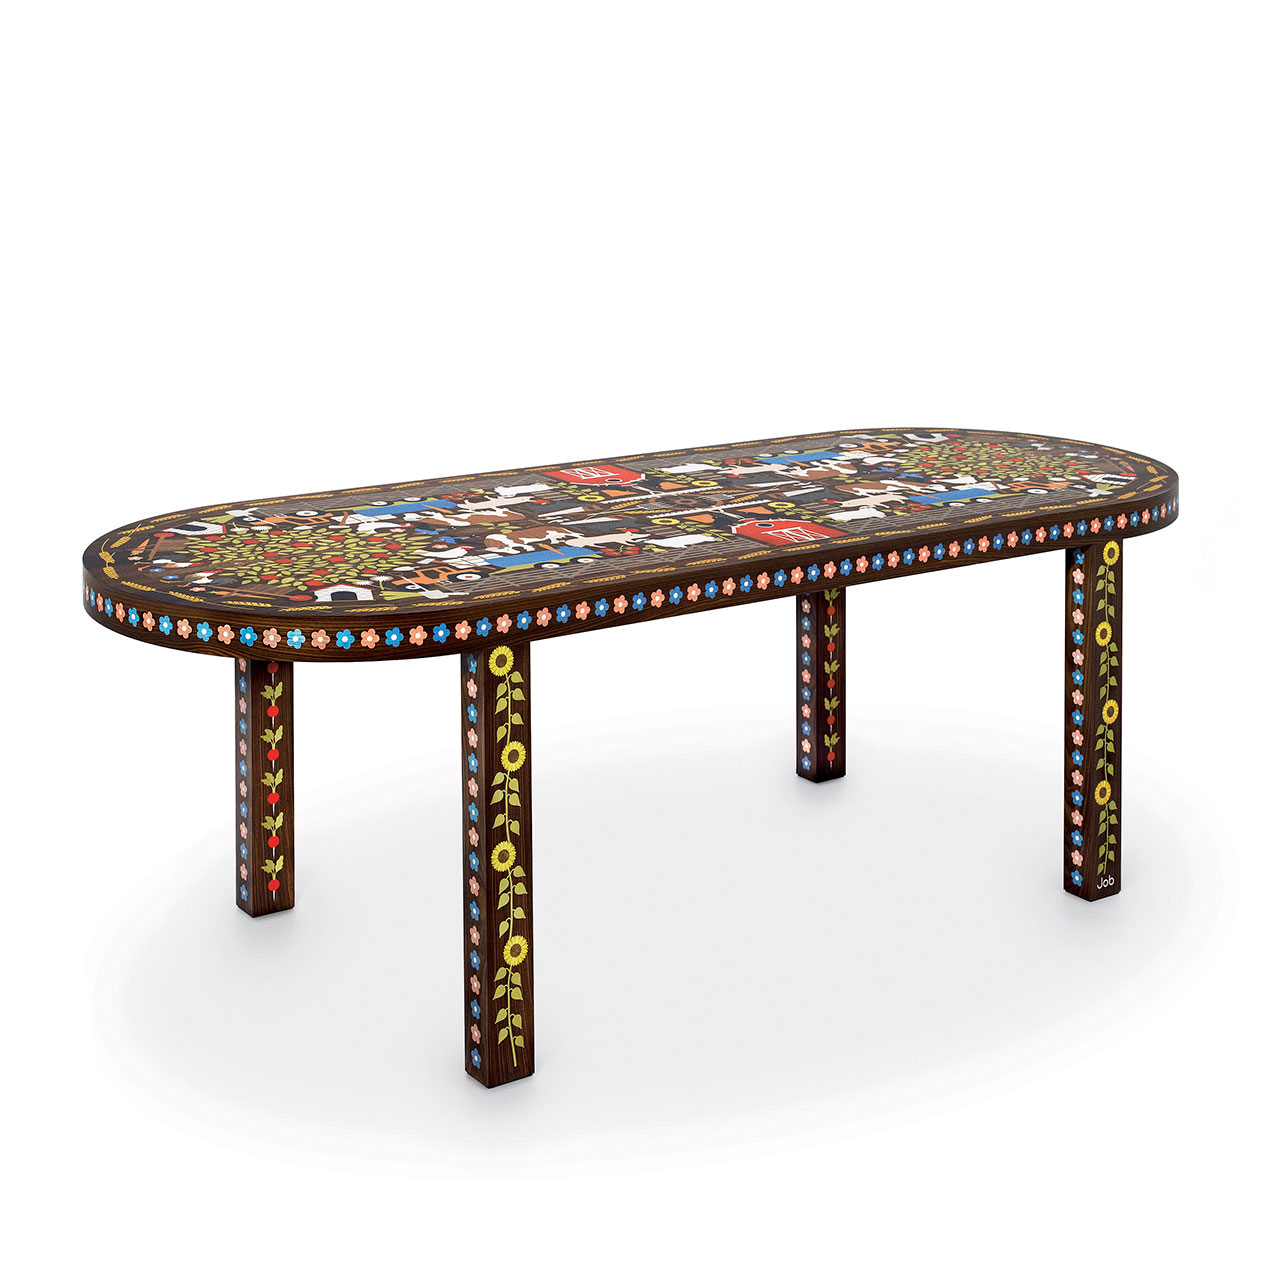 TABLE from Bavaria series, 2008. Collection of Michael Maharam. Photo by Robert Kot.